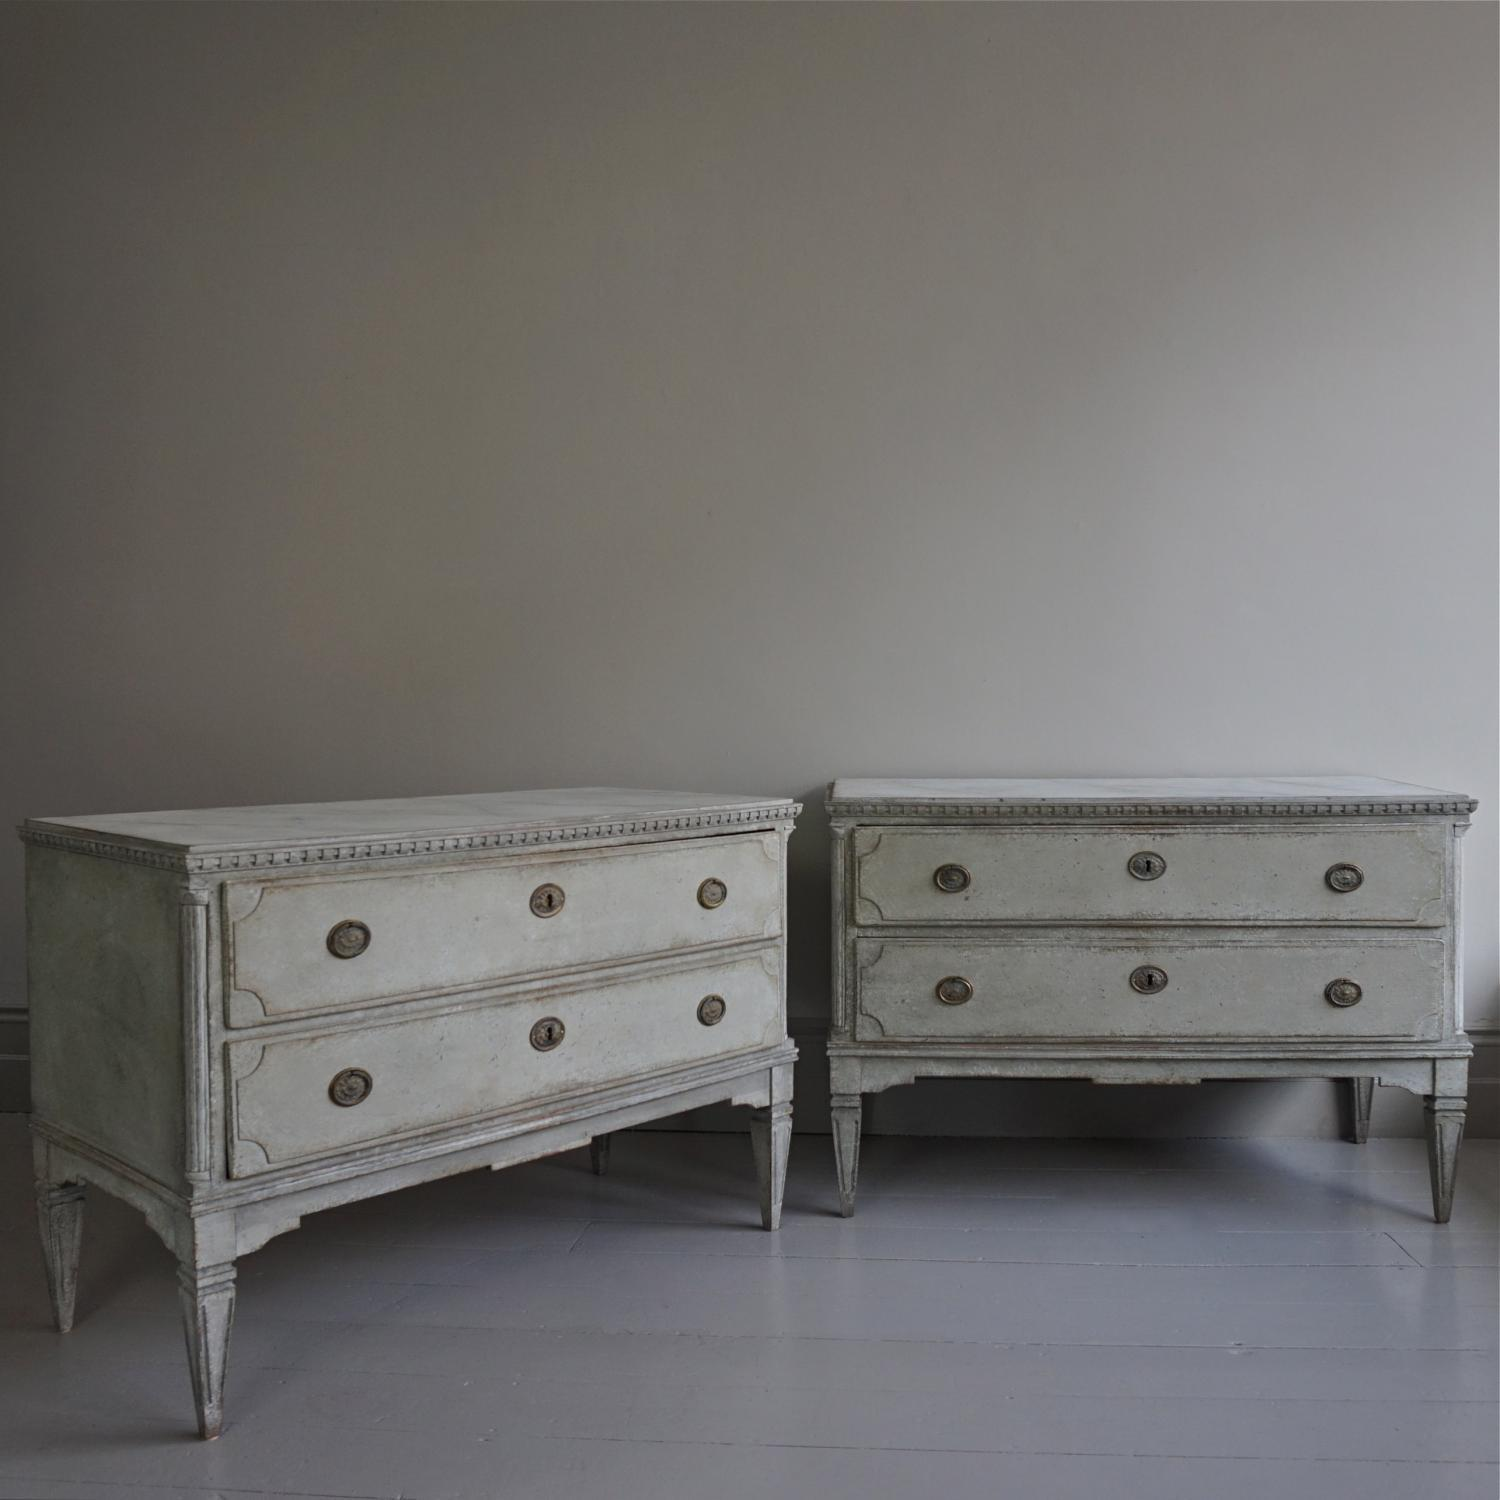 OUTSTANDING PAIR OF GUSTAVIAN CHESTS